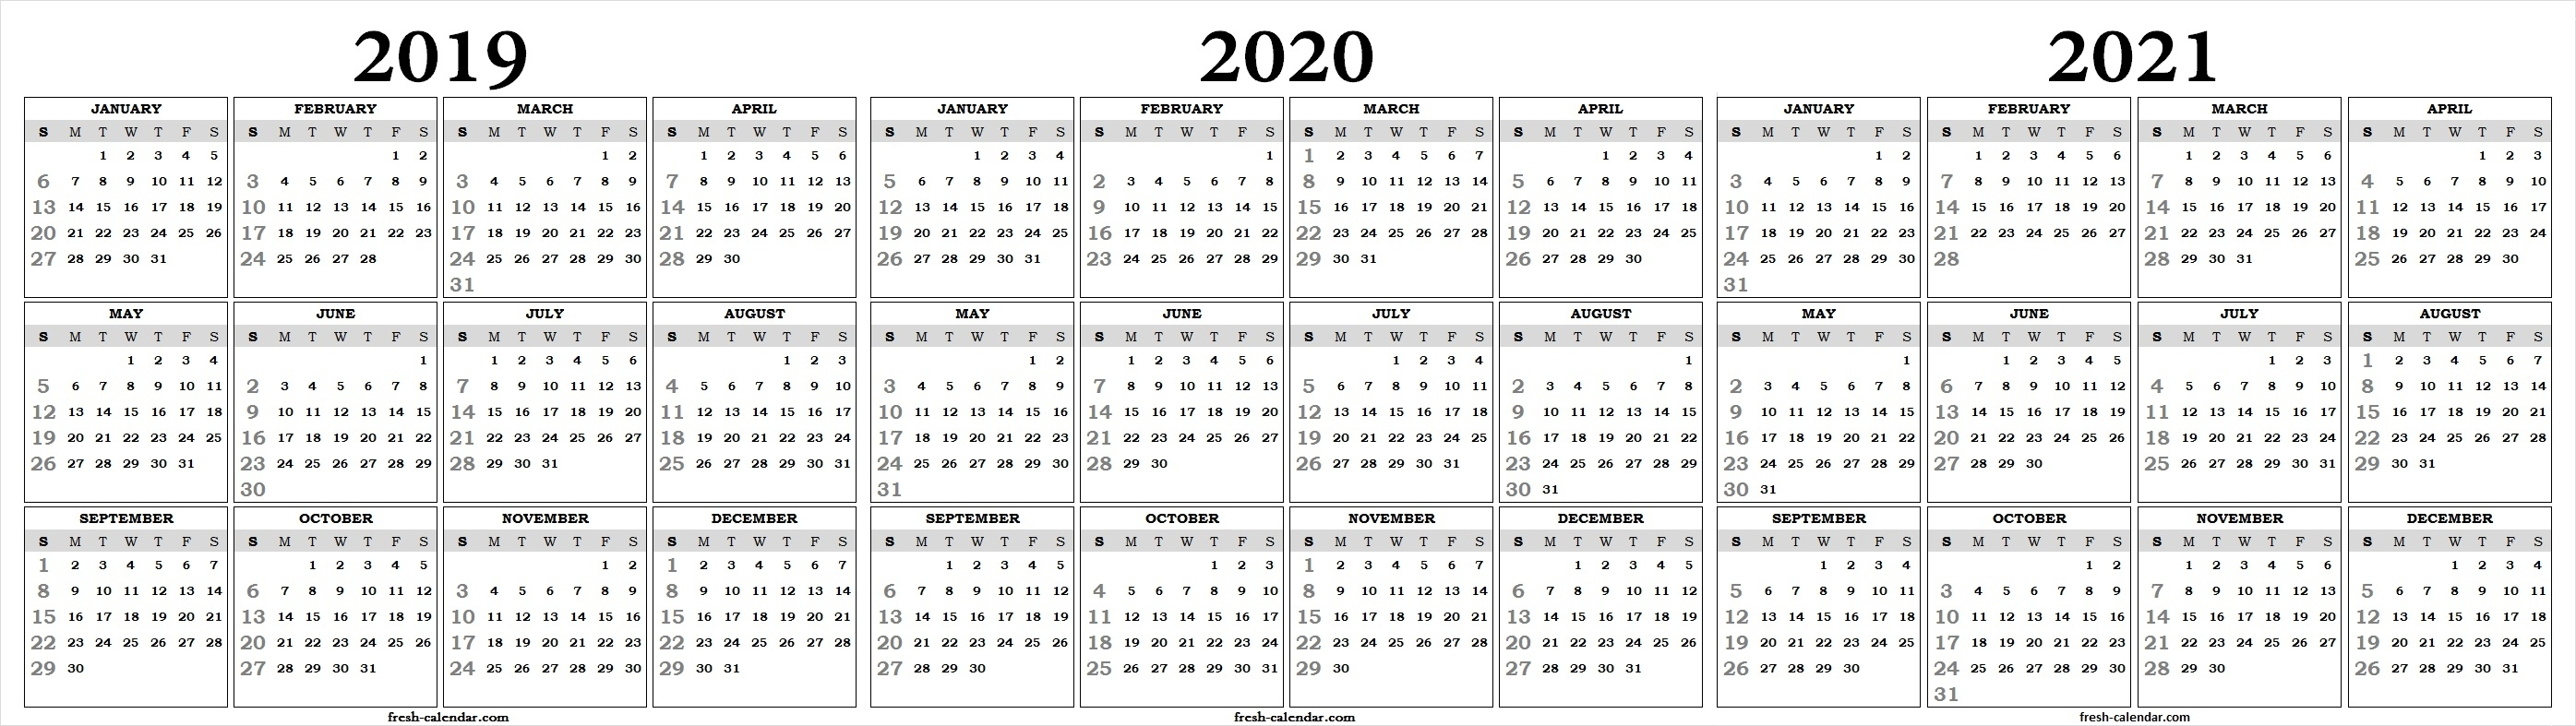 Three Yearly 2019 2020 2021 Calendar Printable Free | Blank Template inside Free Yearly 2019, 2020 2021 Calendar